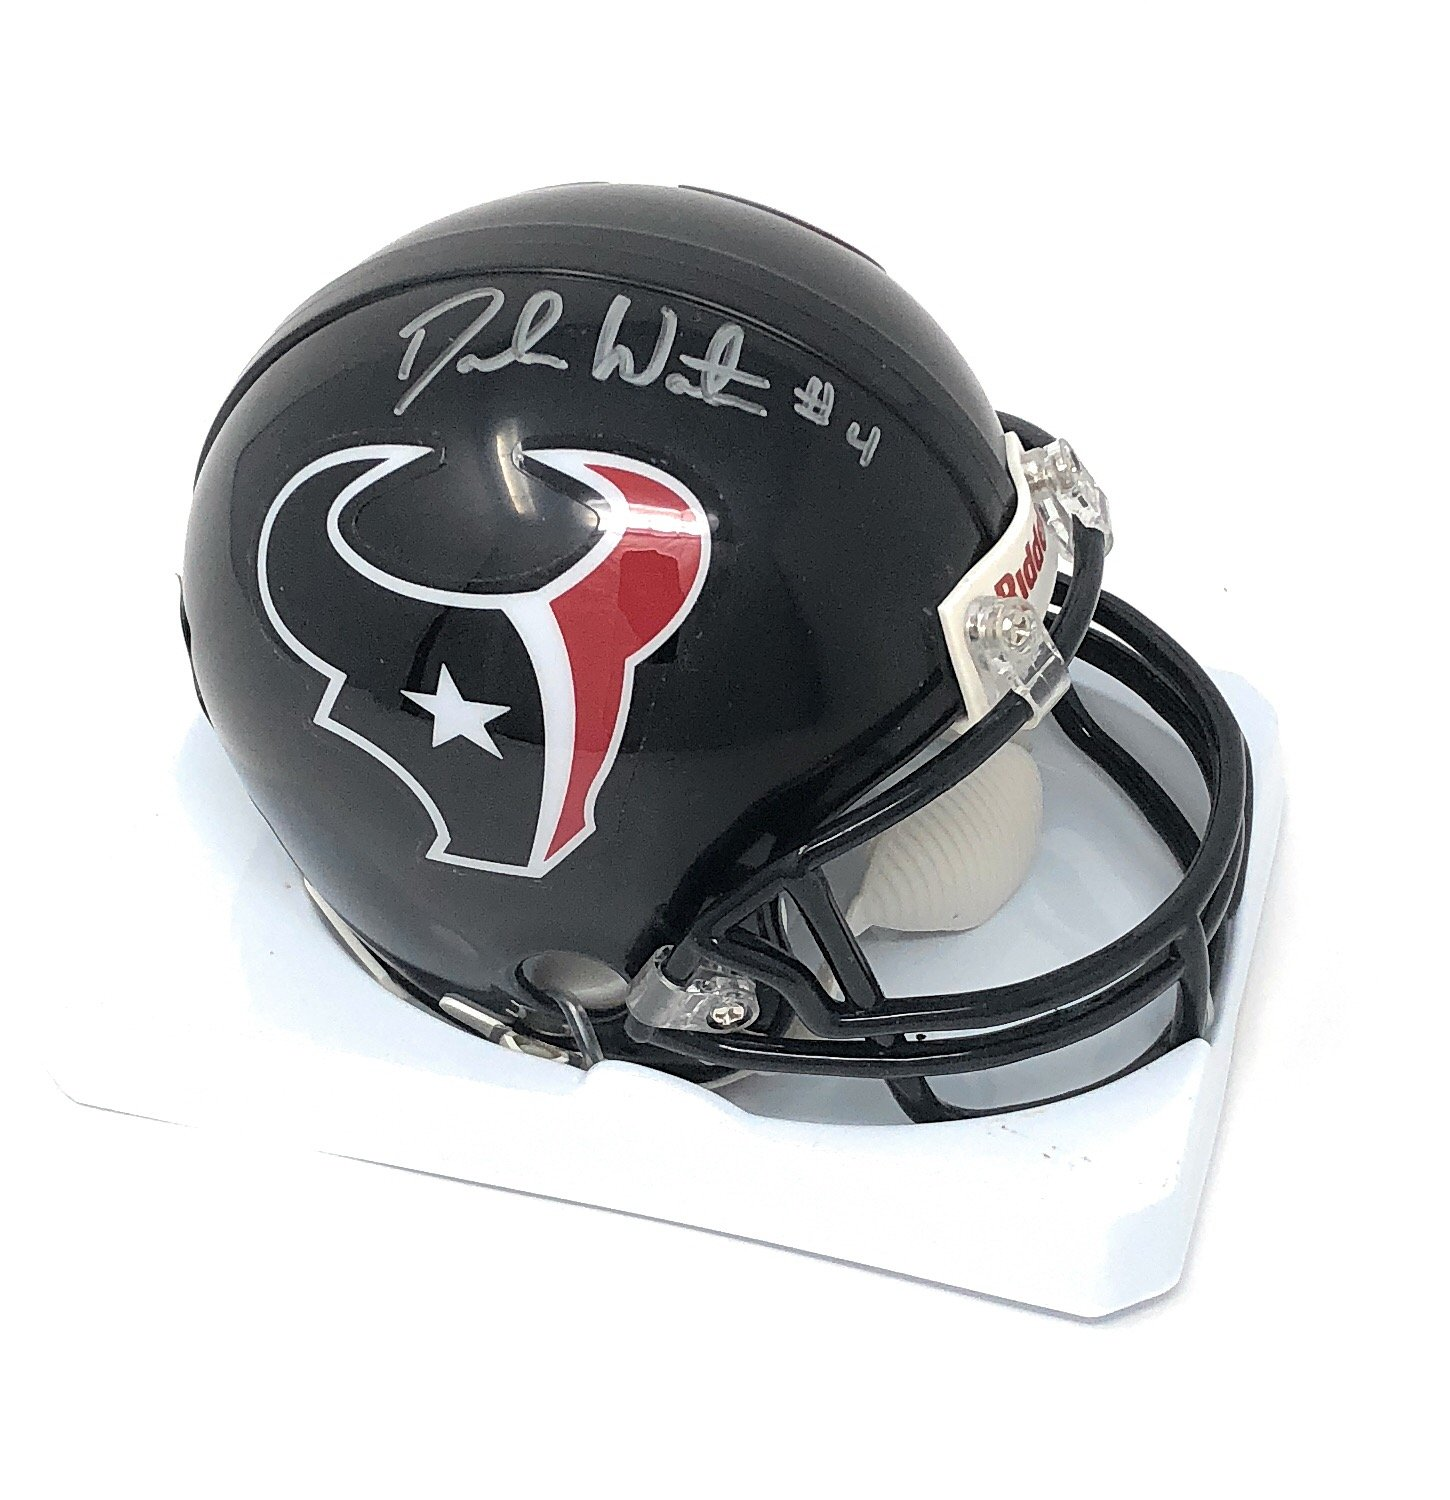 Deshaun Watson Houston Texans Signed Autograph Mini Helmet GTSM Athlete Hologram